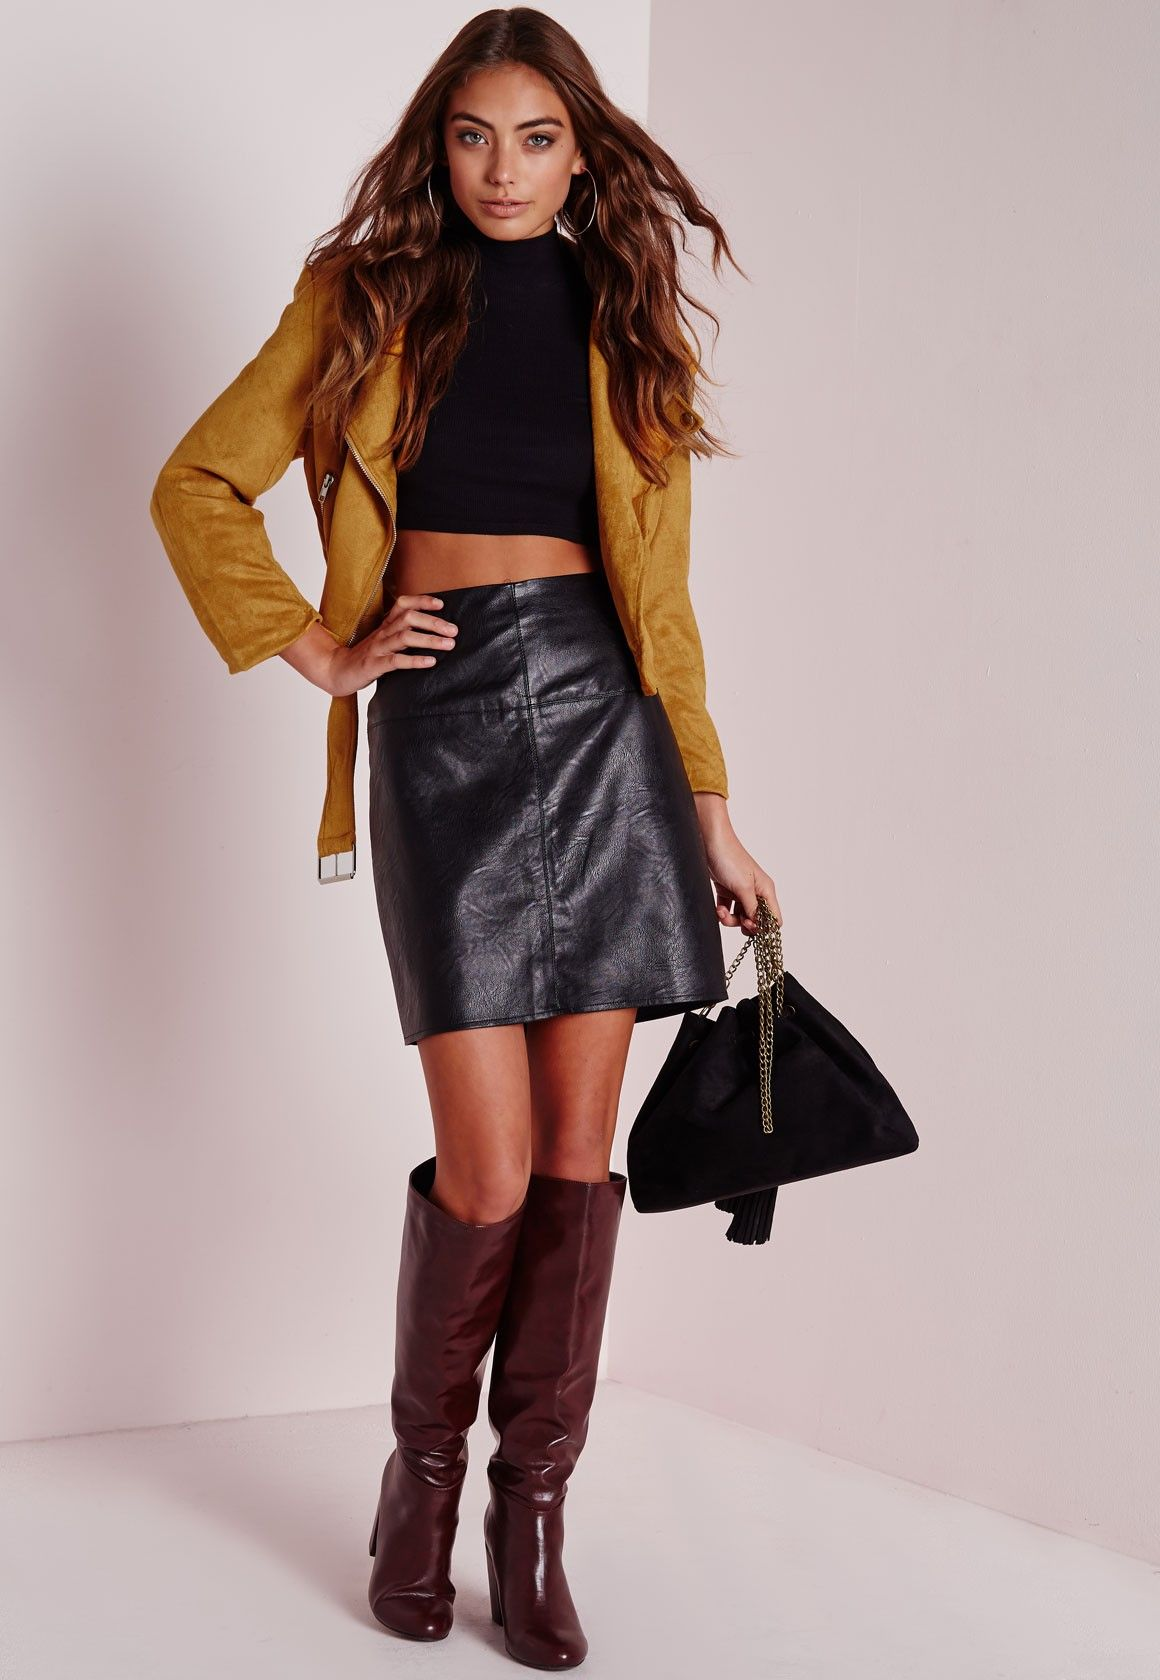 11a00bf75780b9 Vanessa Moe photoshoot for Missguided | leather skirt and pants ...